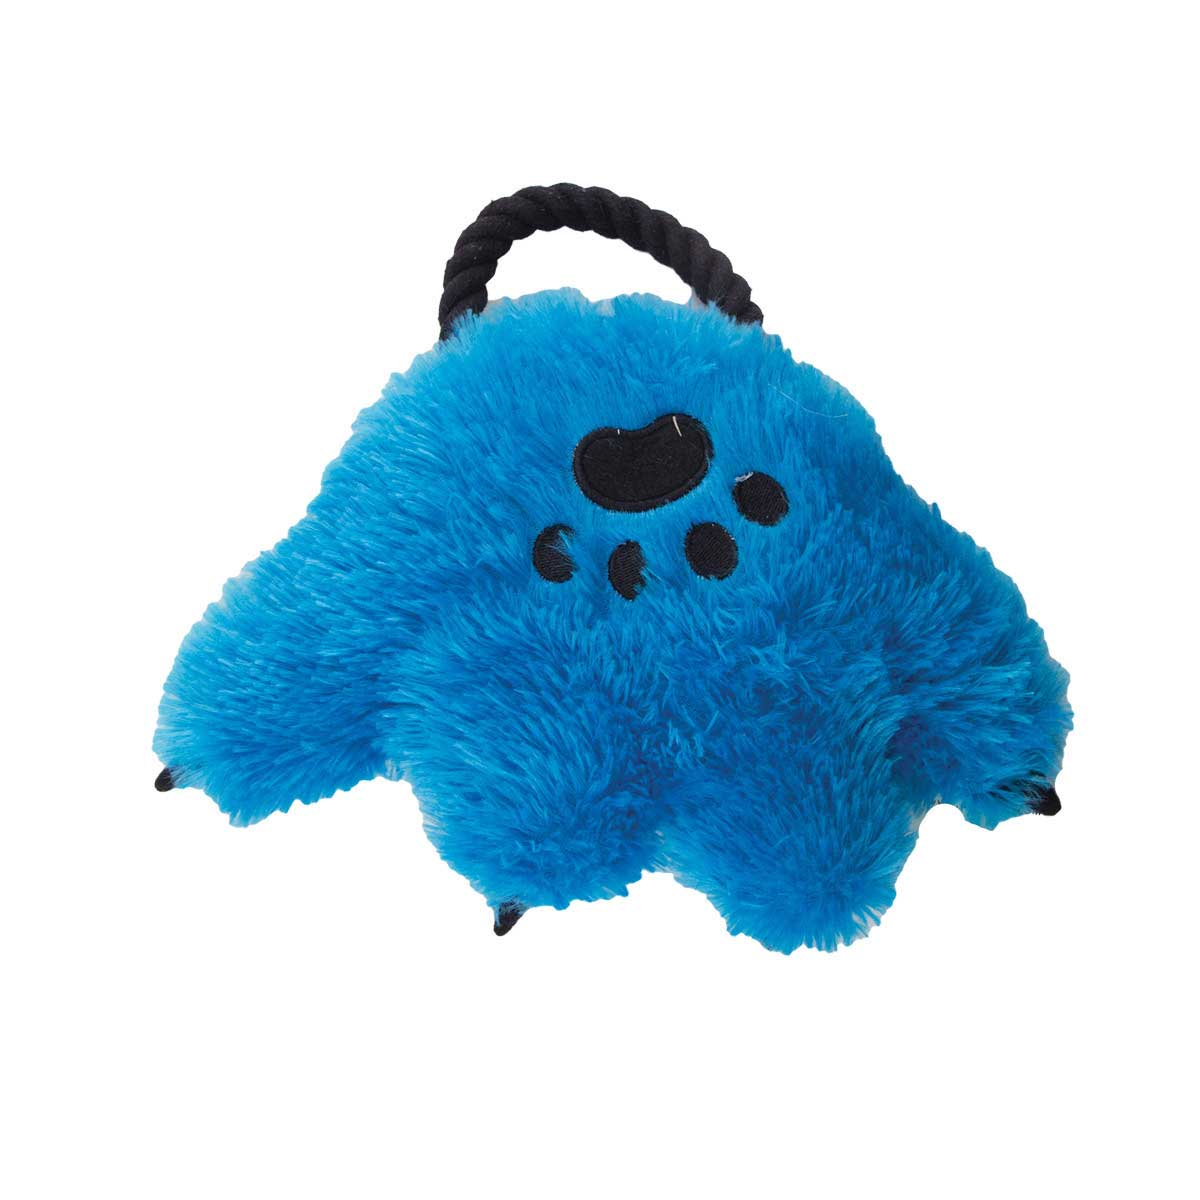 "Dawgeee Toy Paws 7.5"" - Blue"